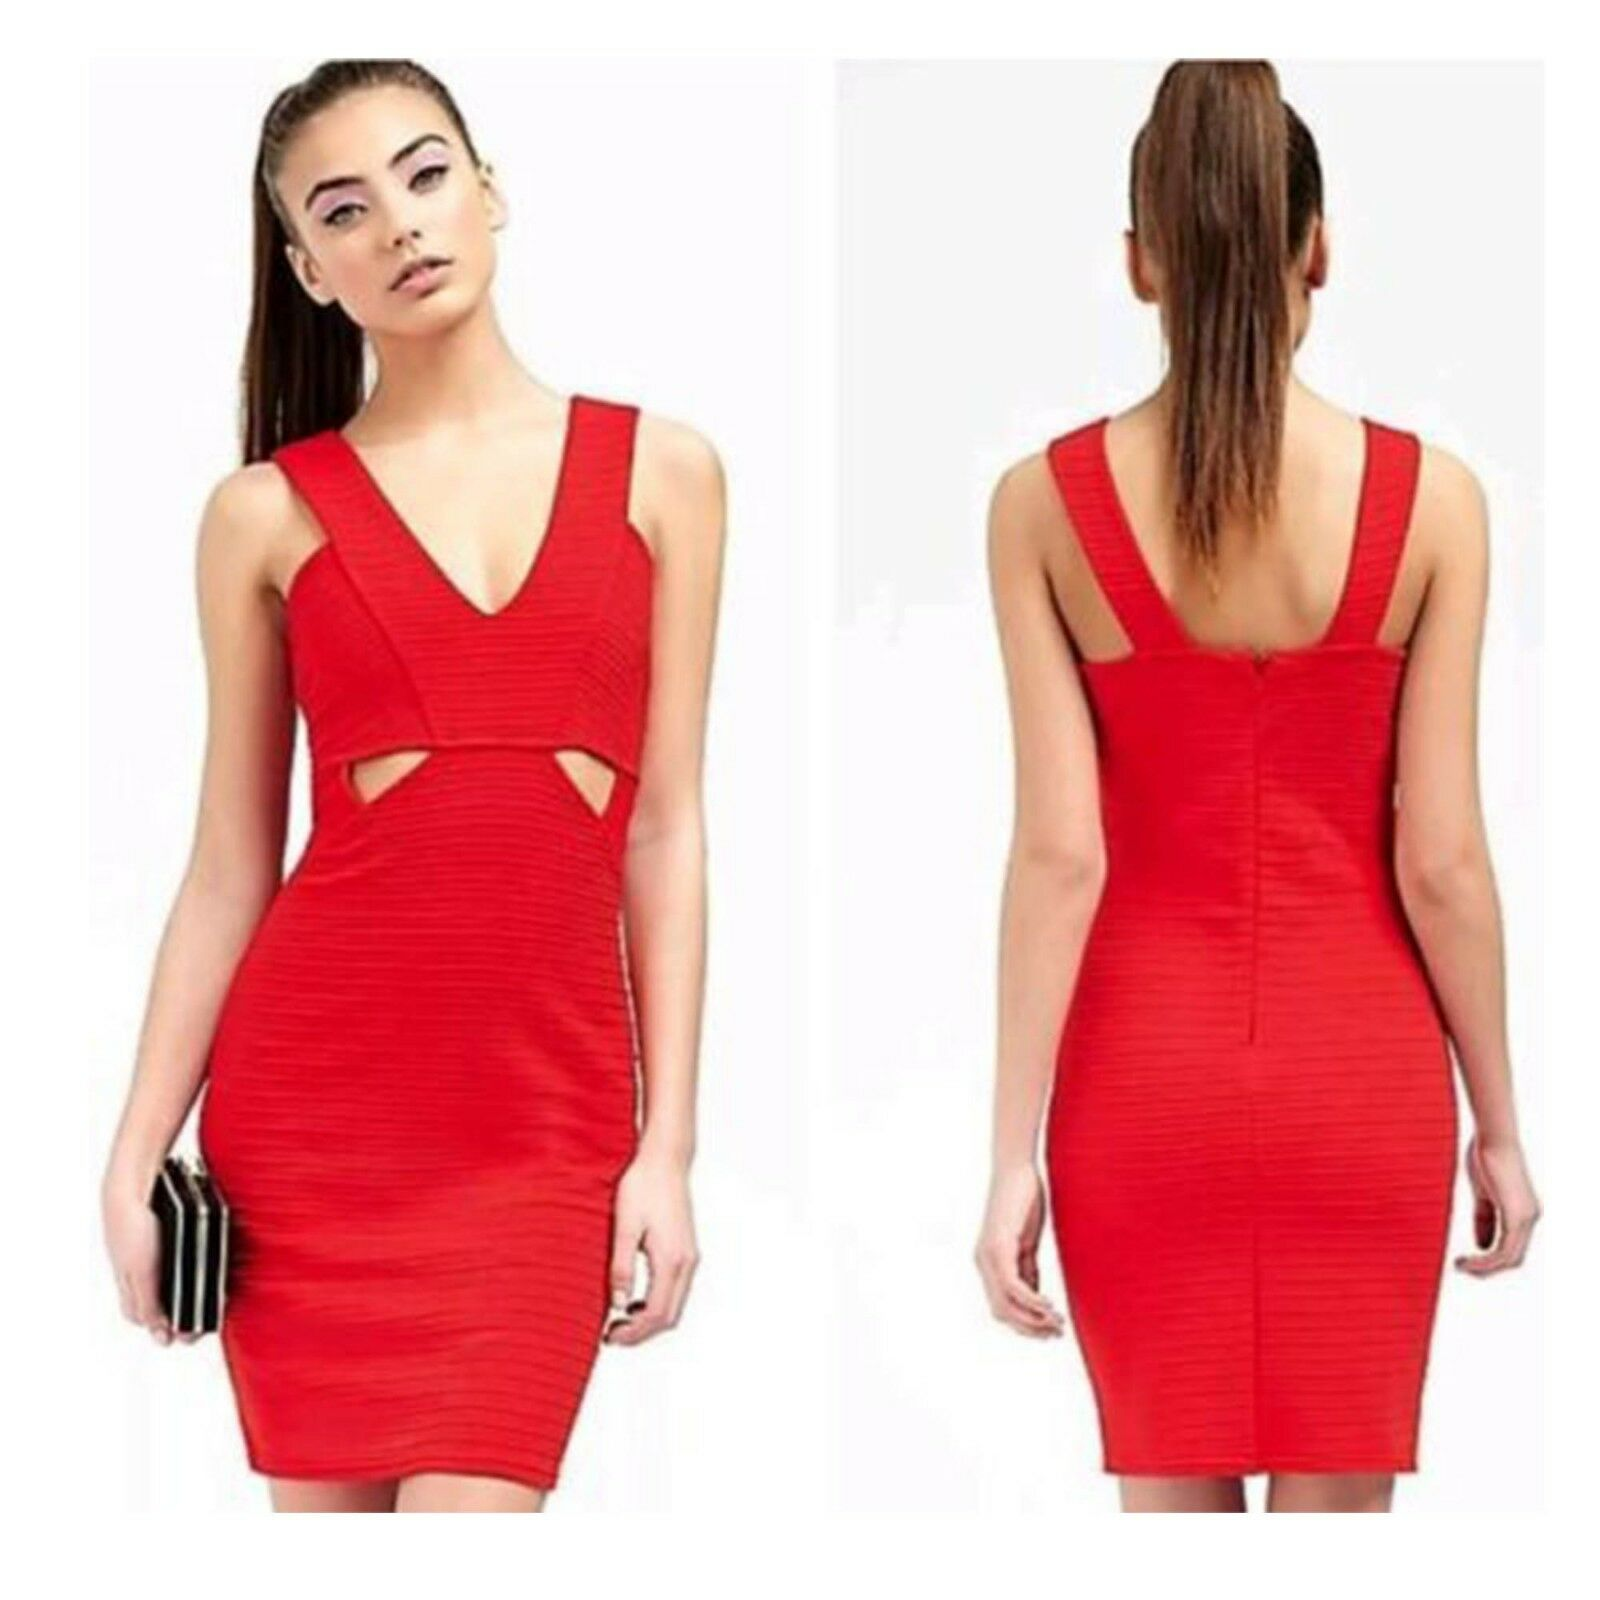 ARIANA GRANDE FOR LIPSY RED CUTAWAY BODYCON PARTY EVENING DRESS SIZE 16 BNWT